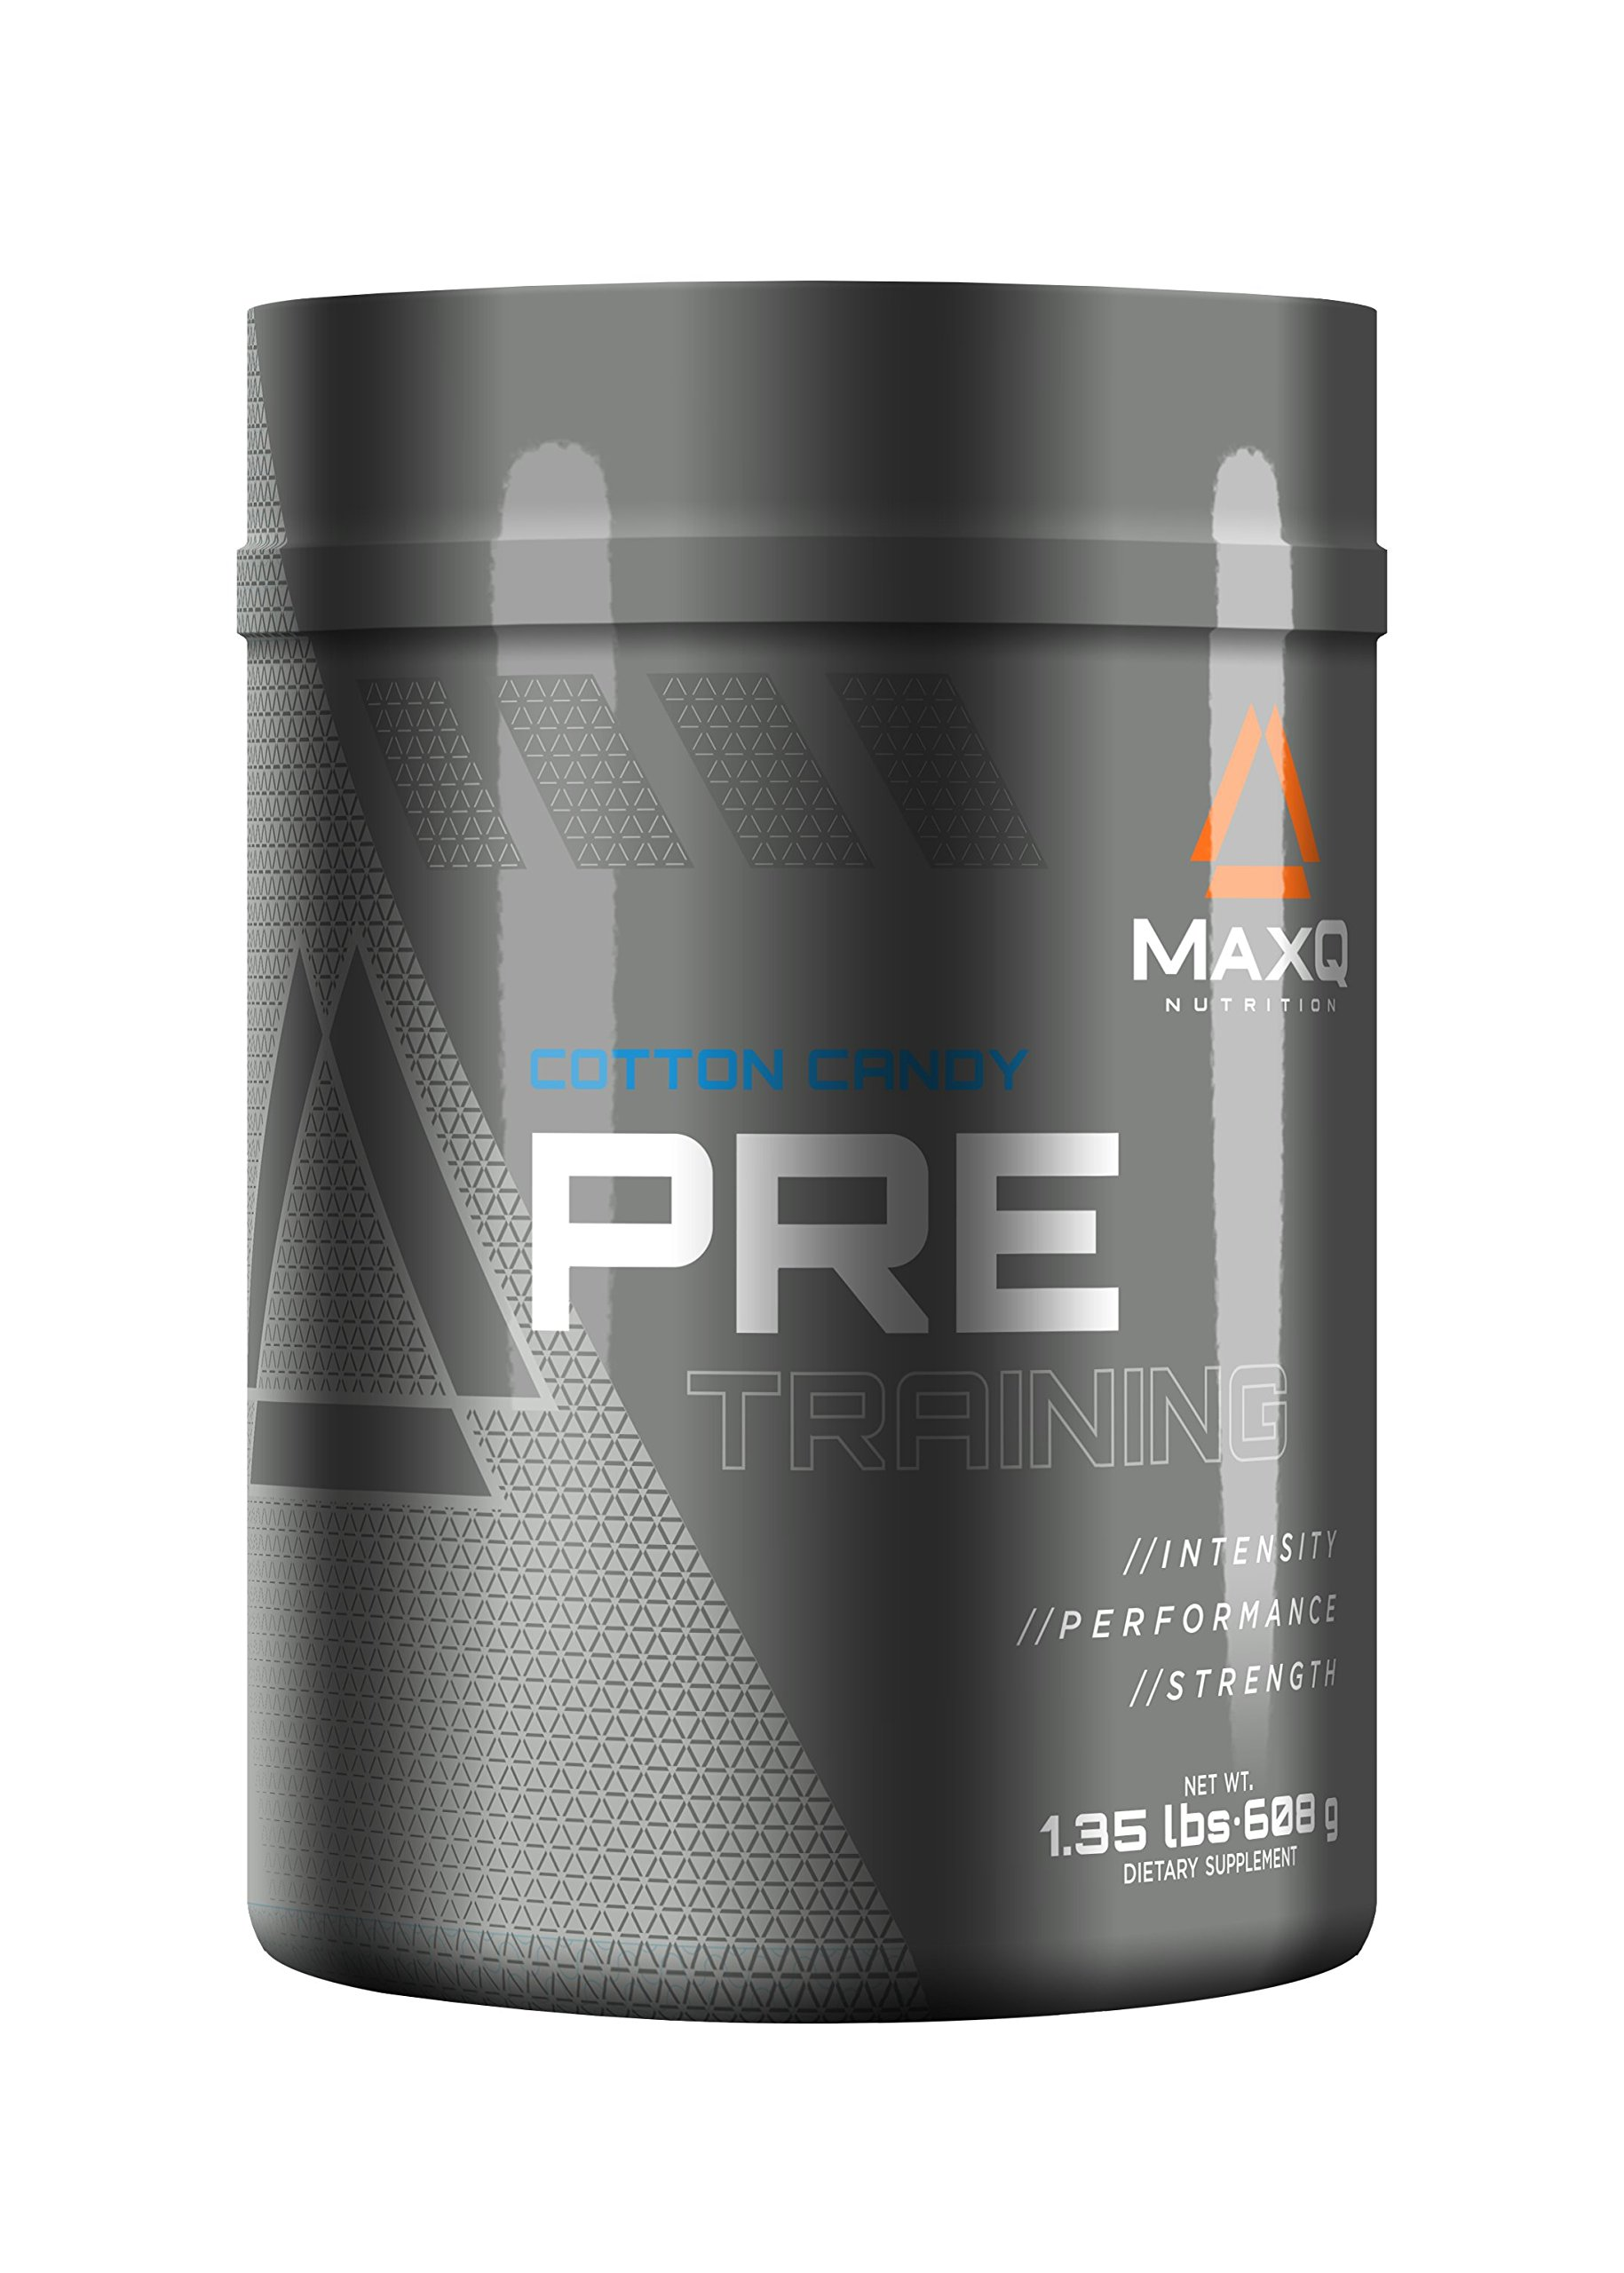 MaxQ Nutrition PRE-Training pre workout powder, energy drink supplement w/ Creatine, BCAAs, Beta Alanine, Arginine, Tyrosine and more. Cotton Candy, 20 servings.